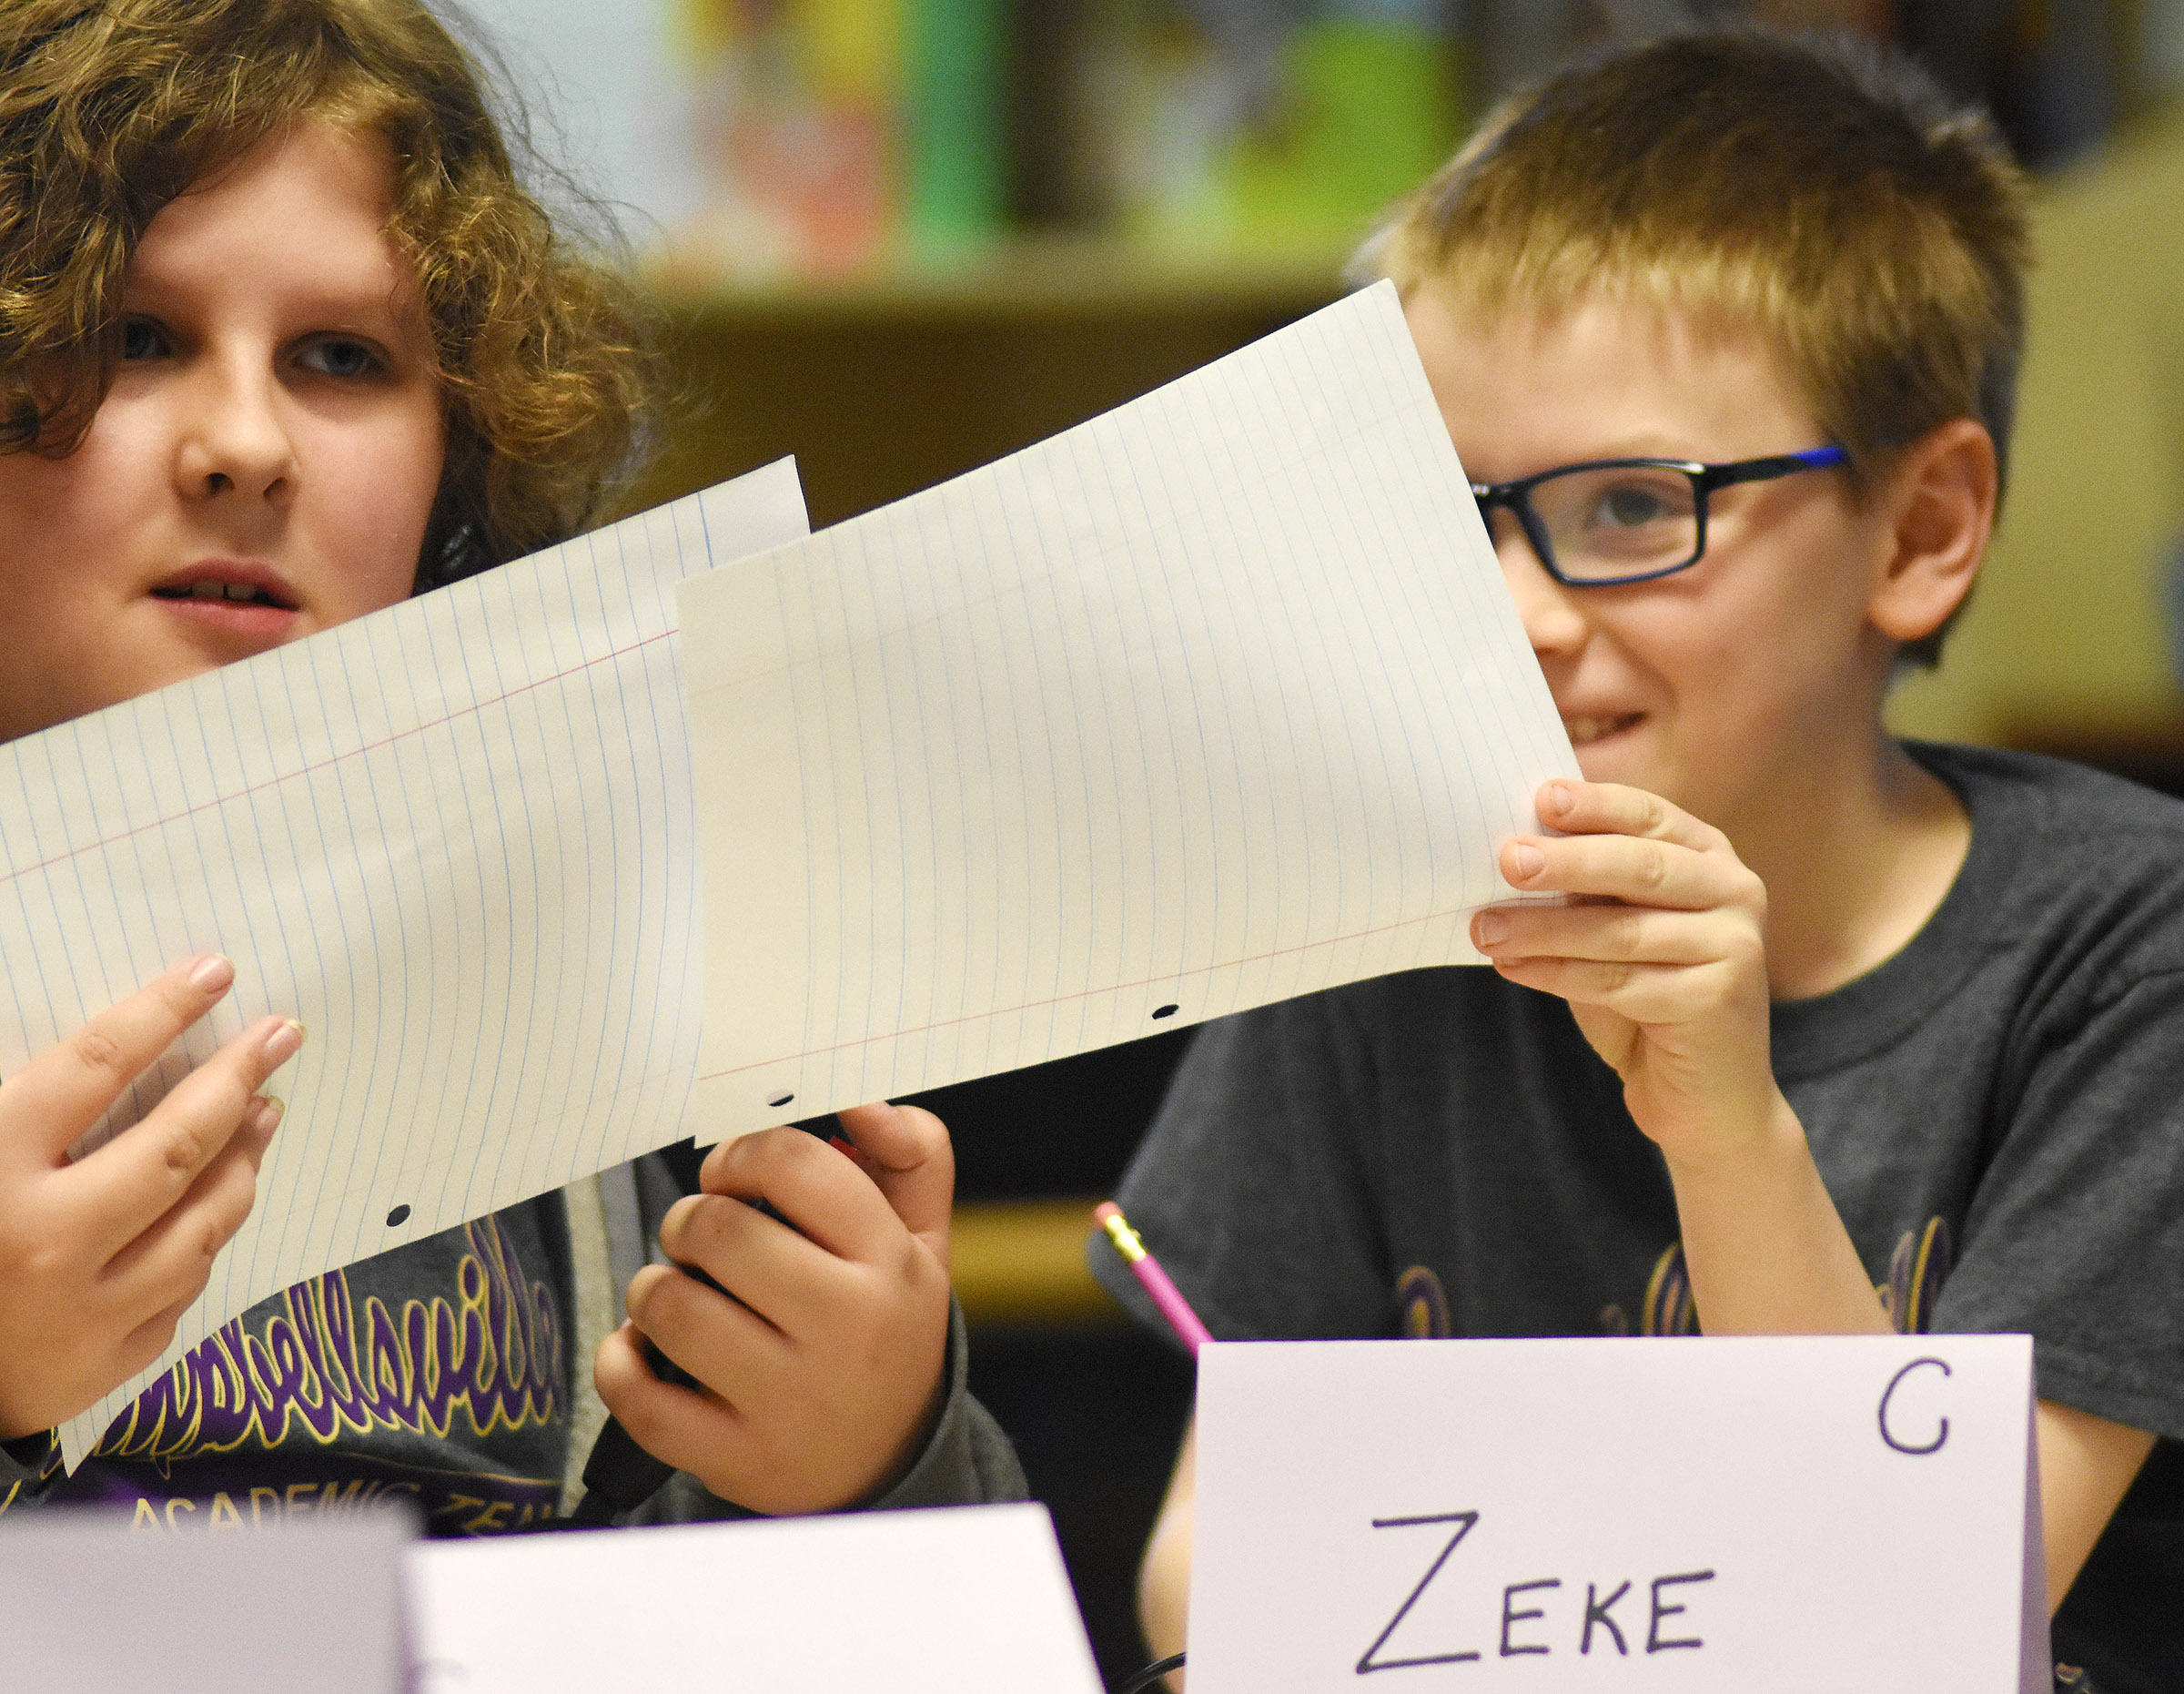 CES fifth-grader Zeke Harris, at left, and fourth-grader Connor Coots discuss a question during a quick recall match.